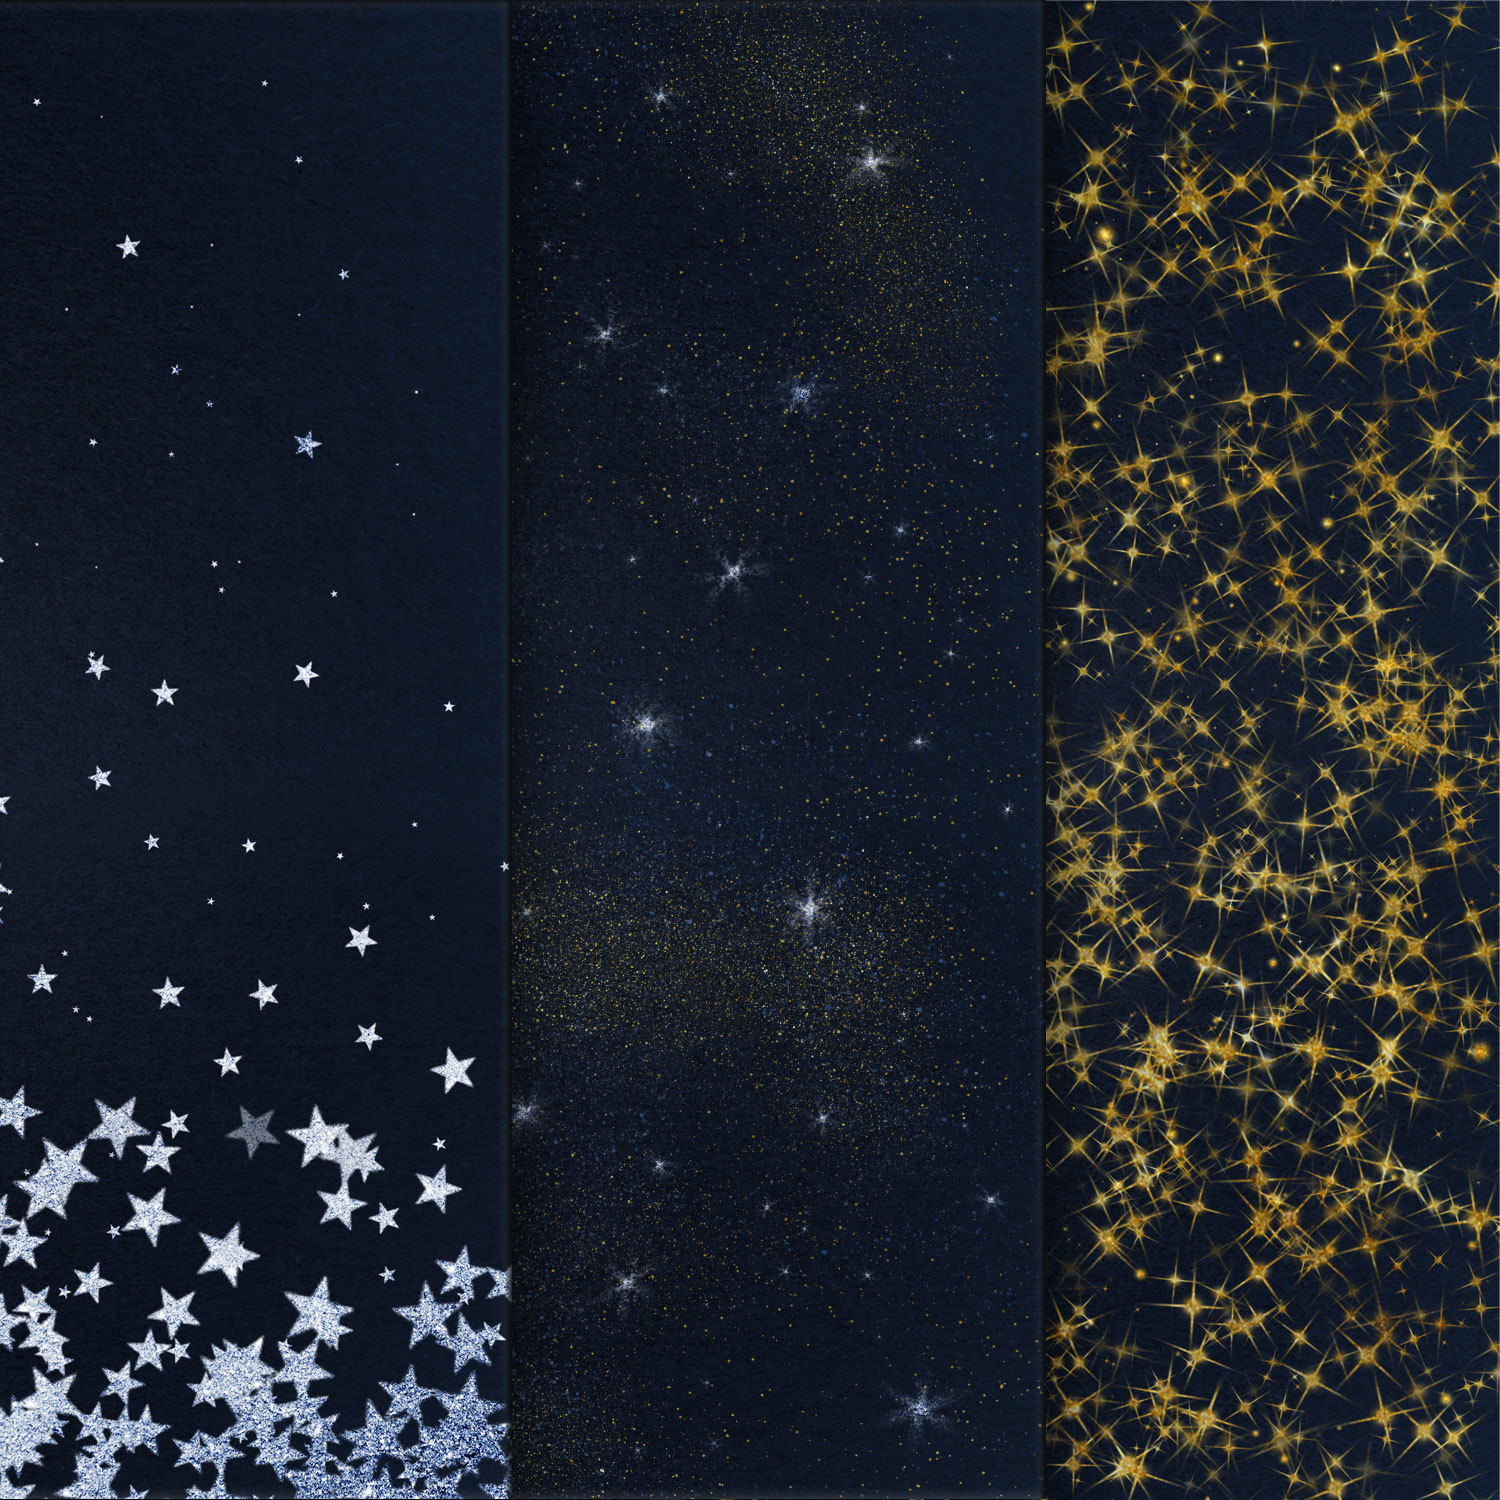 Starry Night Backgrounds example image 3